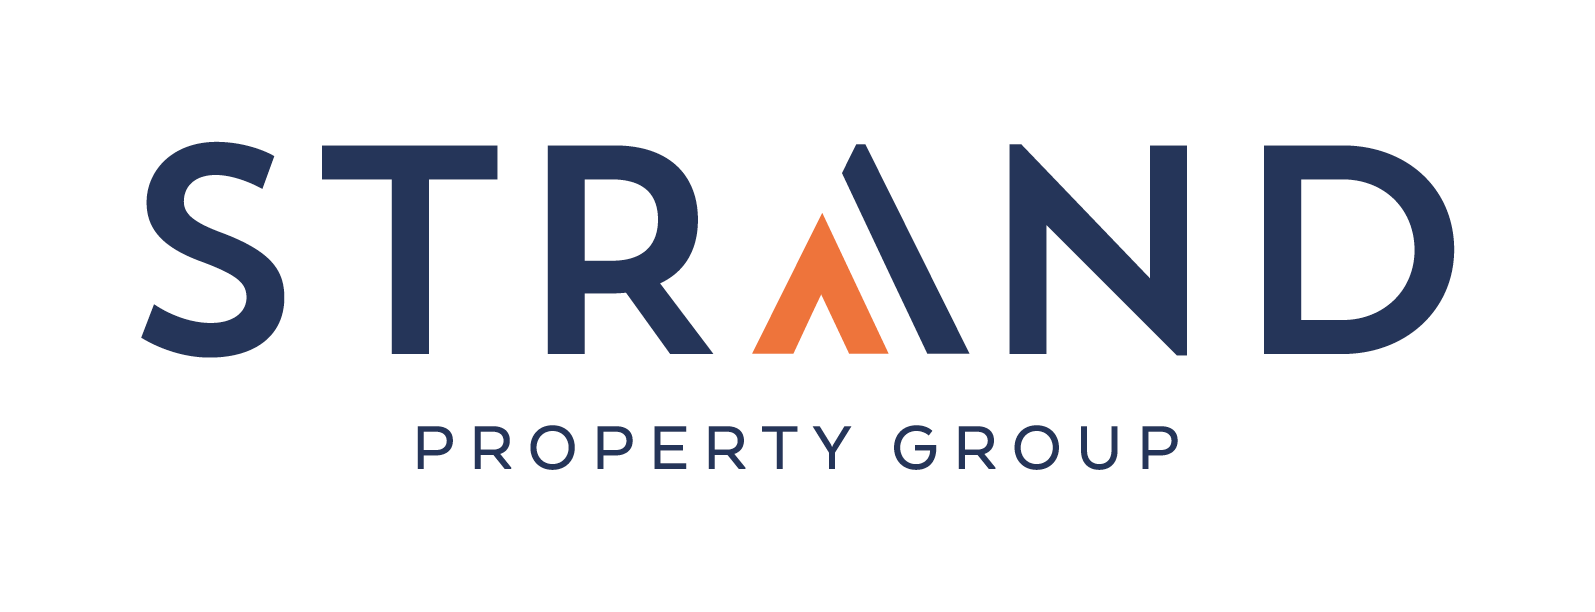 STRAND Property Group